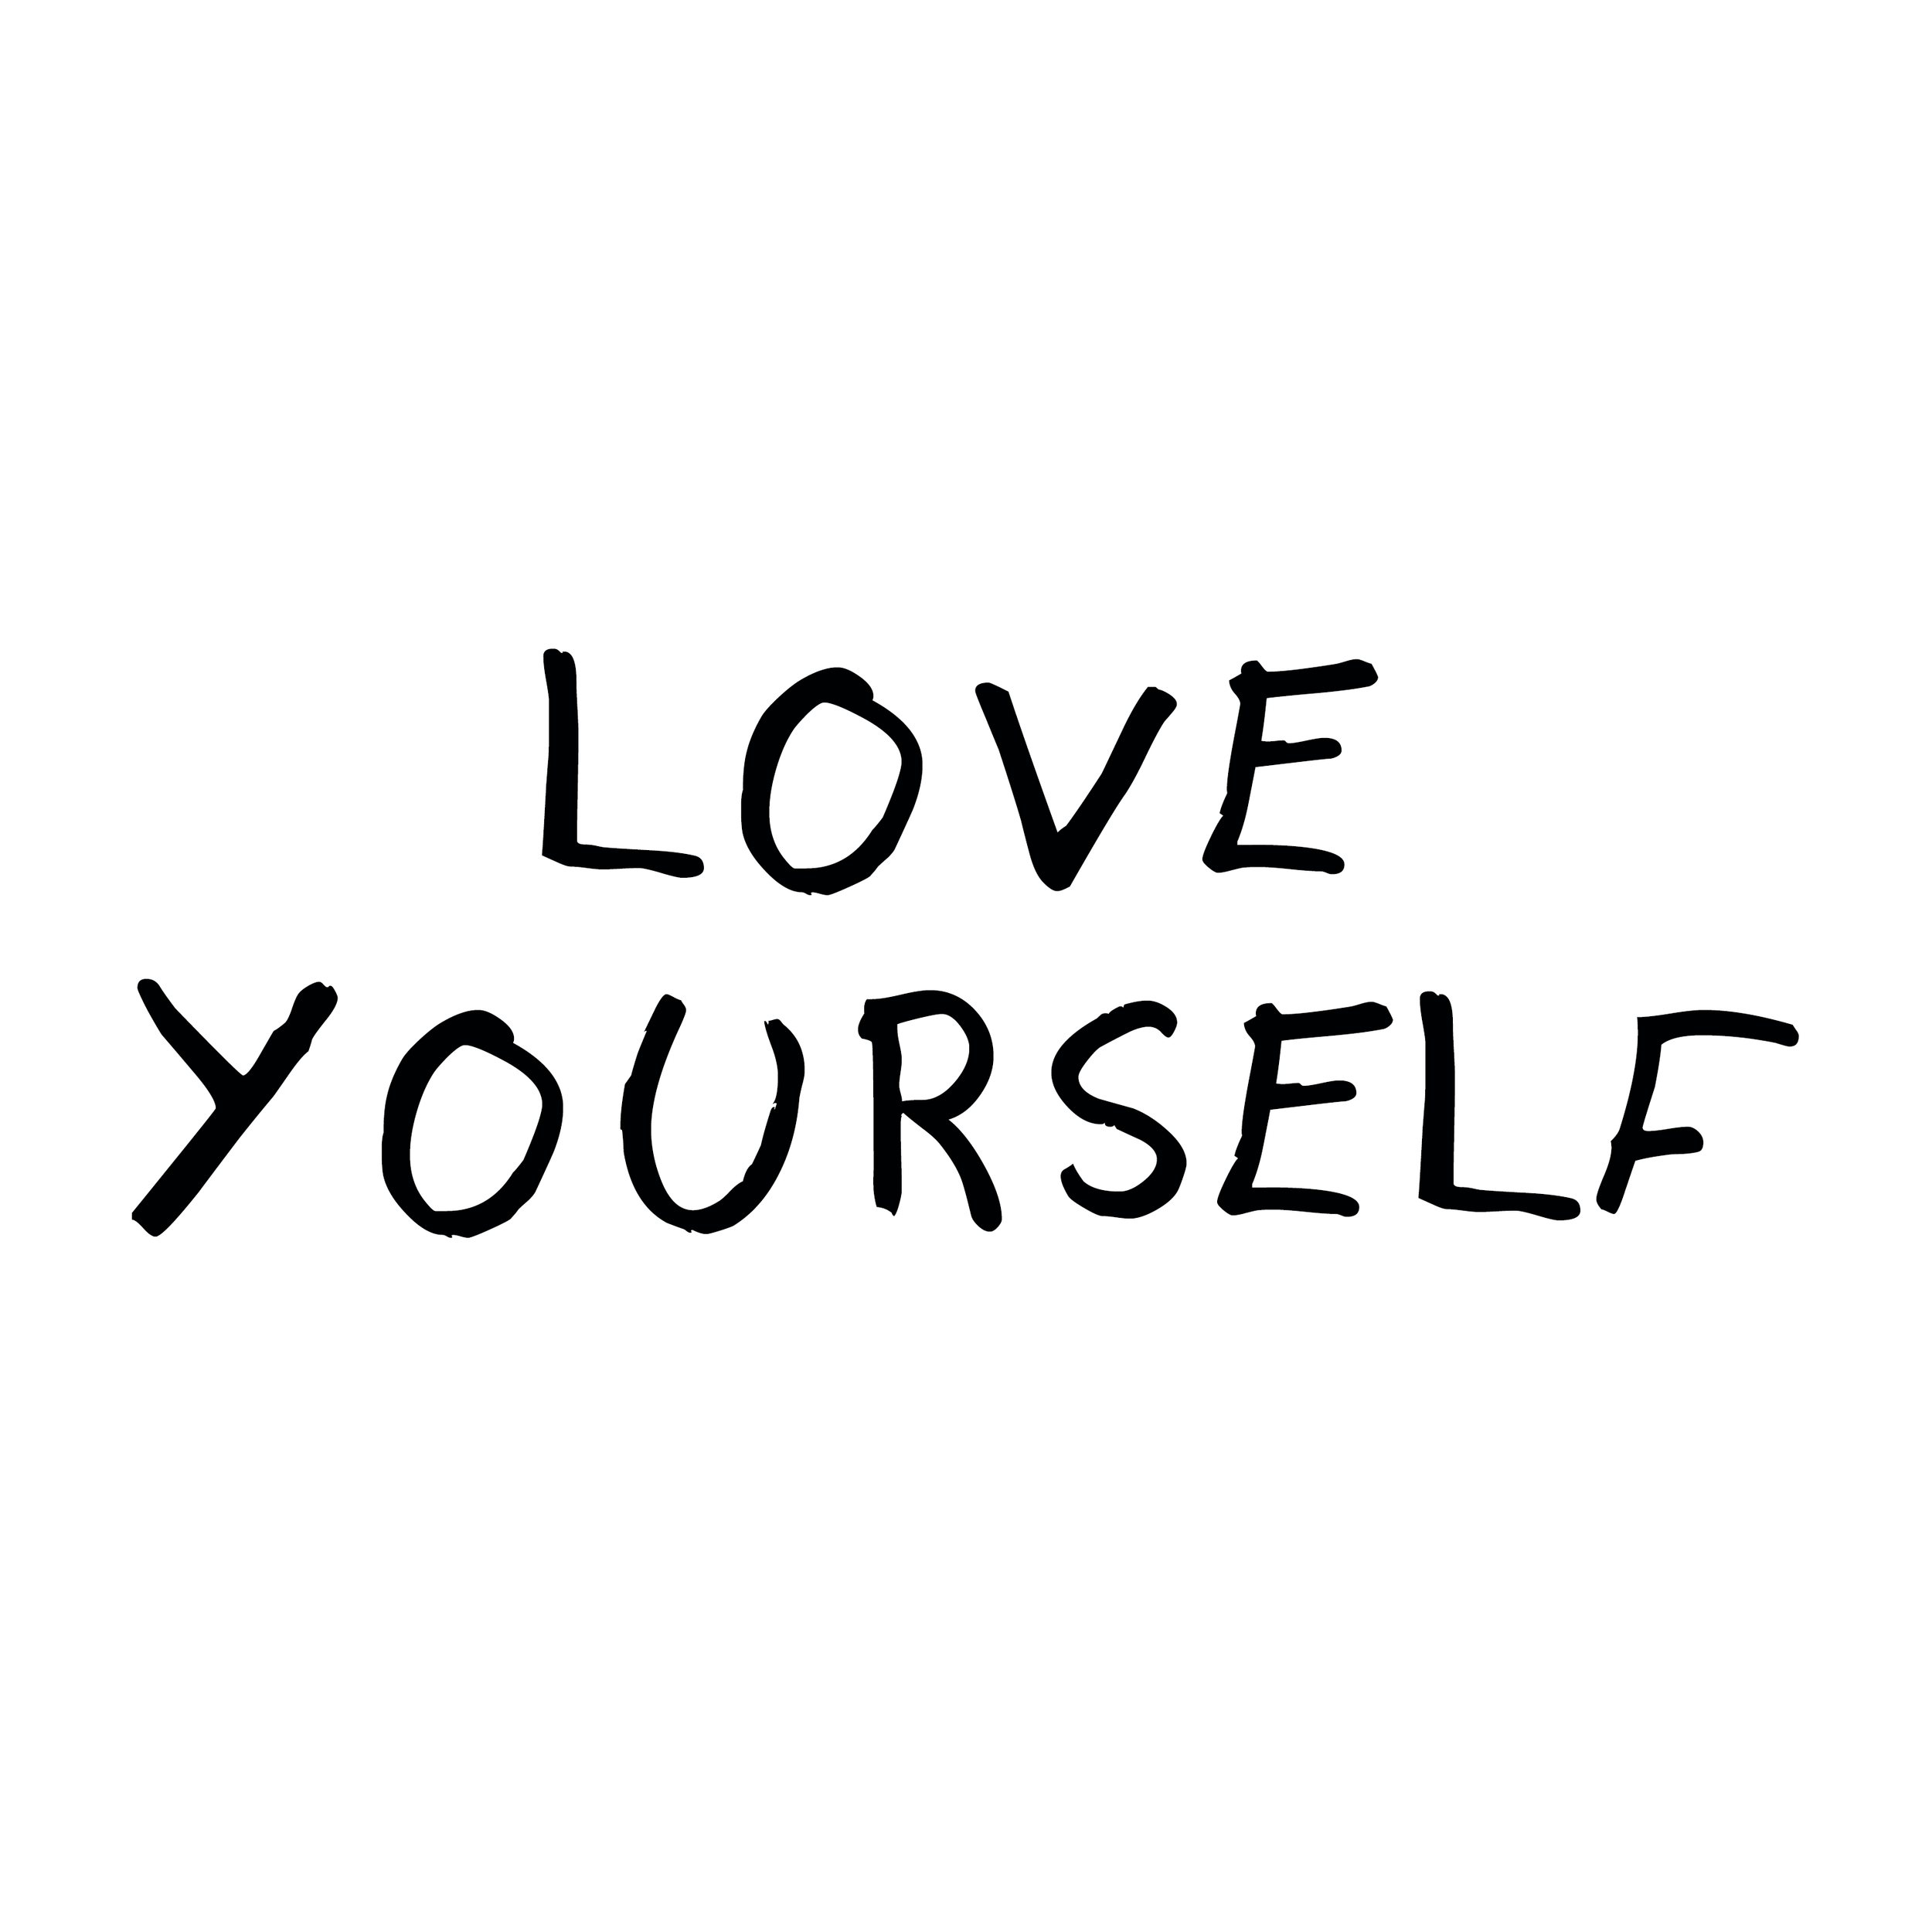 loveyourself-1.png